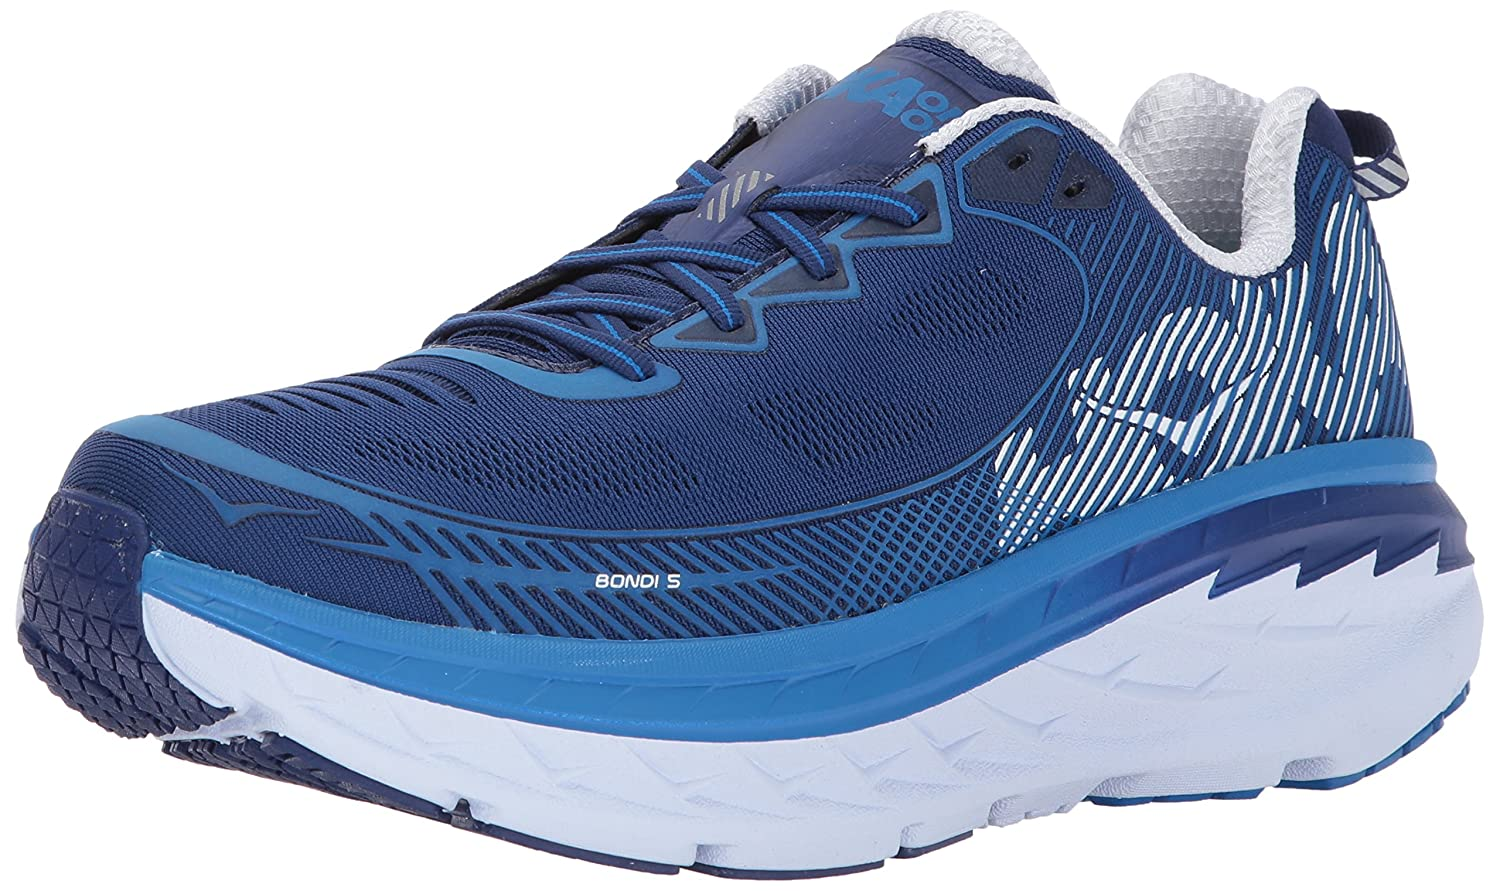 HOKA(HOKA) ボンダイ(Bondi) 5 1014757-CGTB B01N1UL174 9 D(M) US Blueprint/White